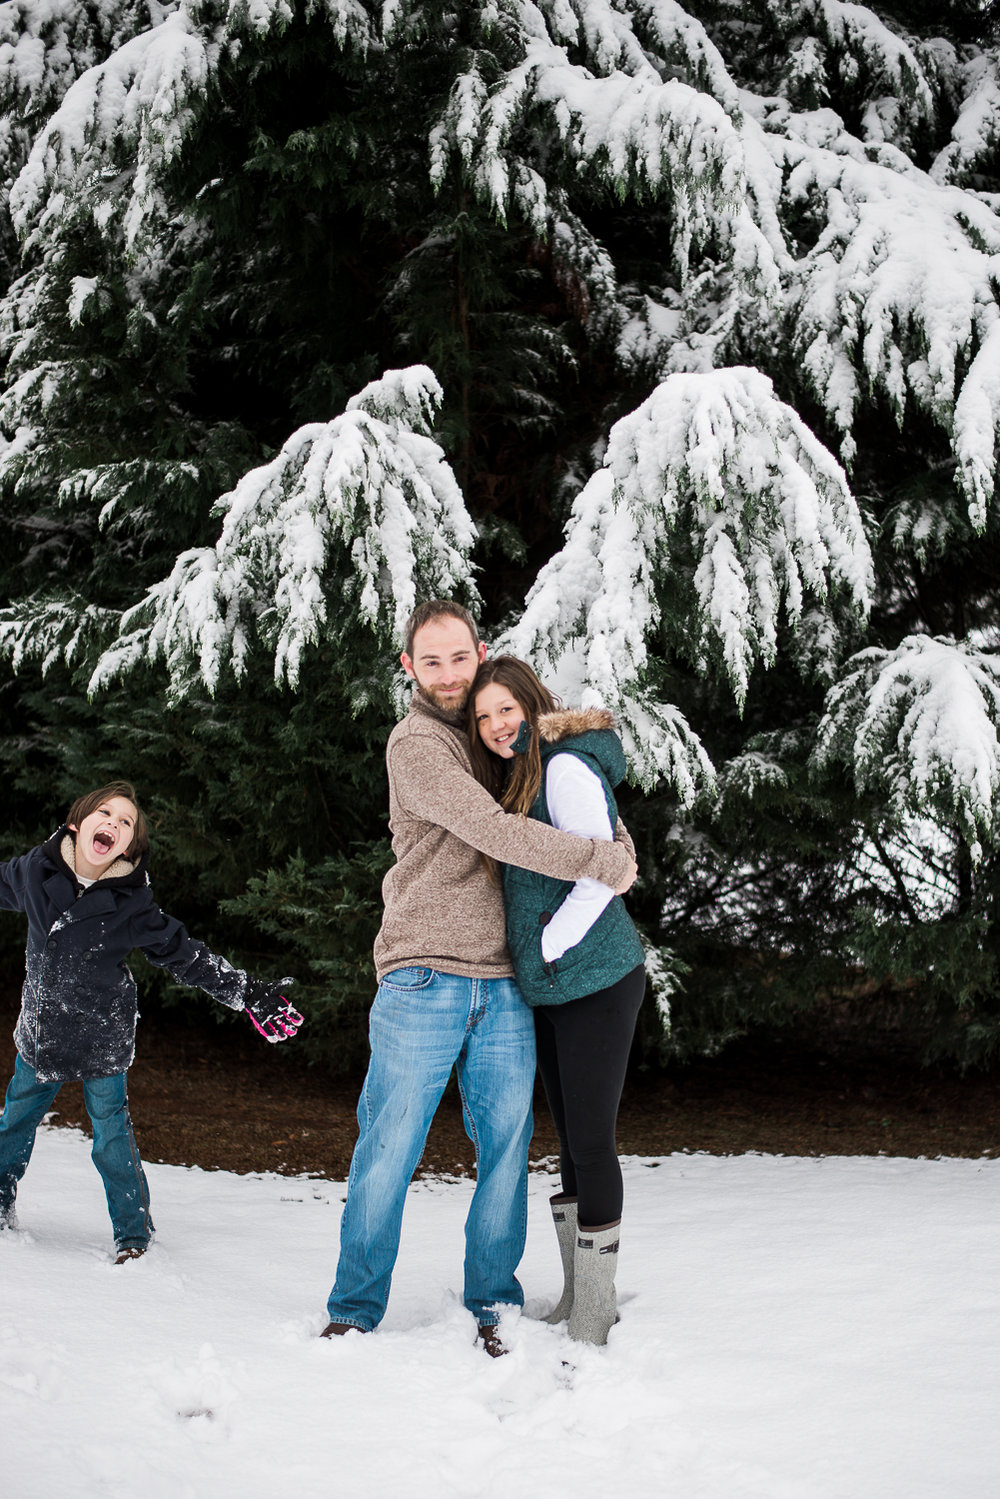 Snow Family Pictures, Lifestyle Family Pictures, Family of 4-152.jpg